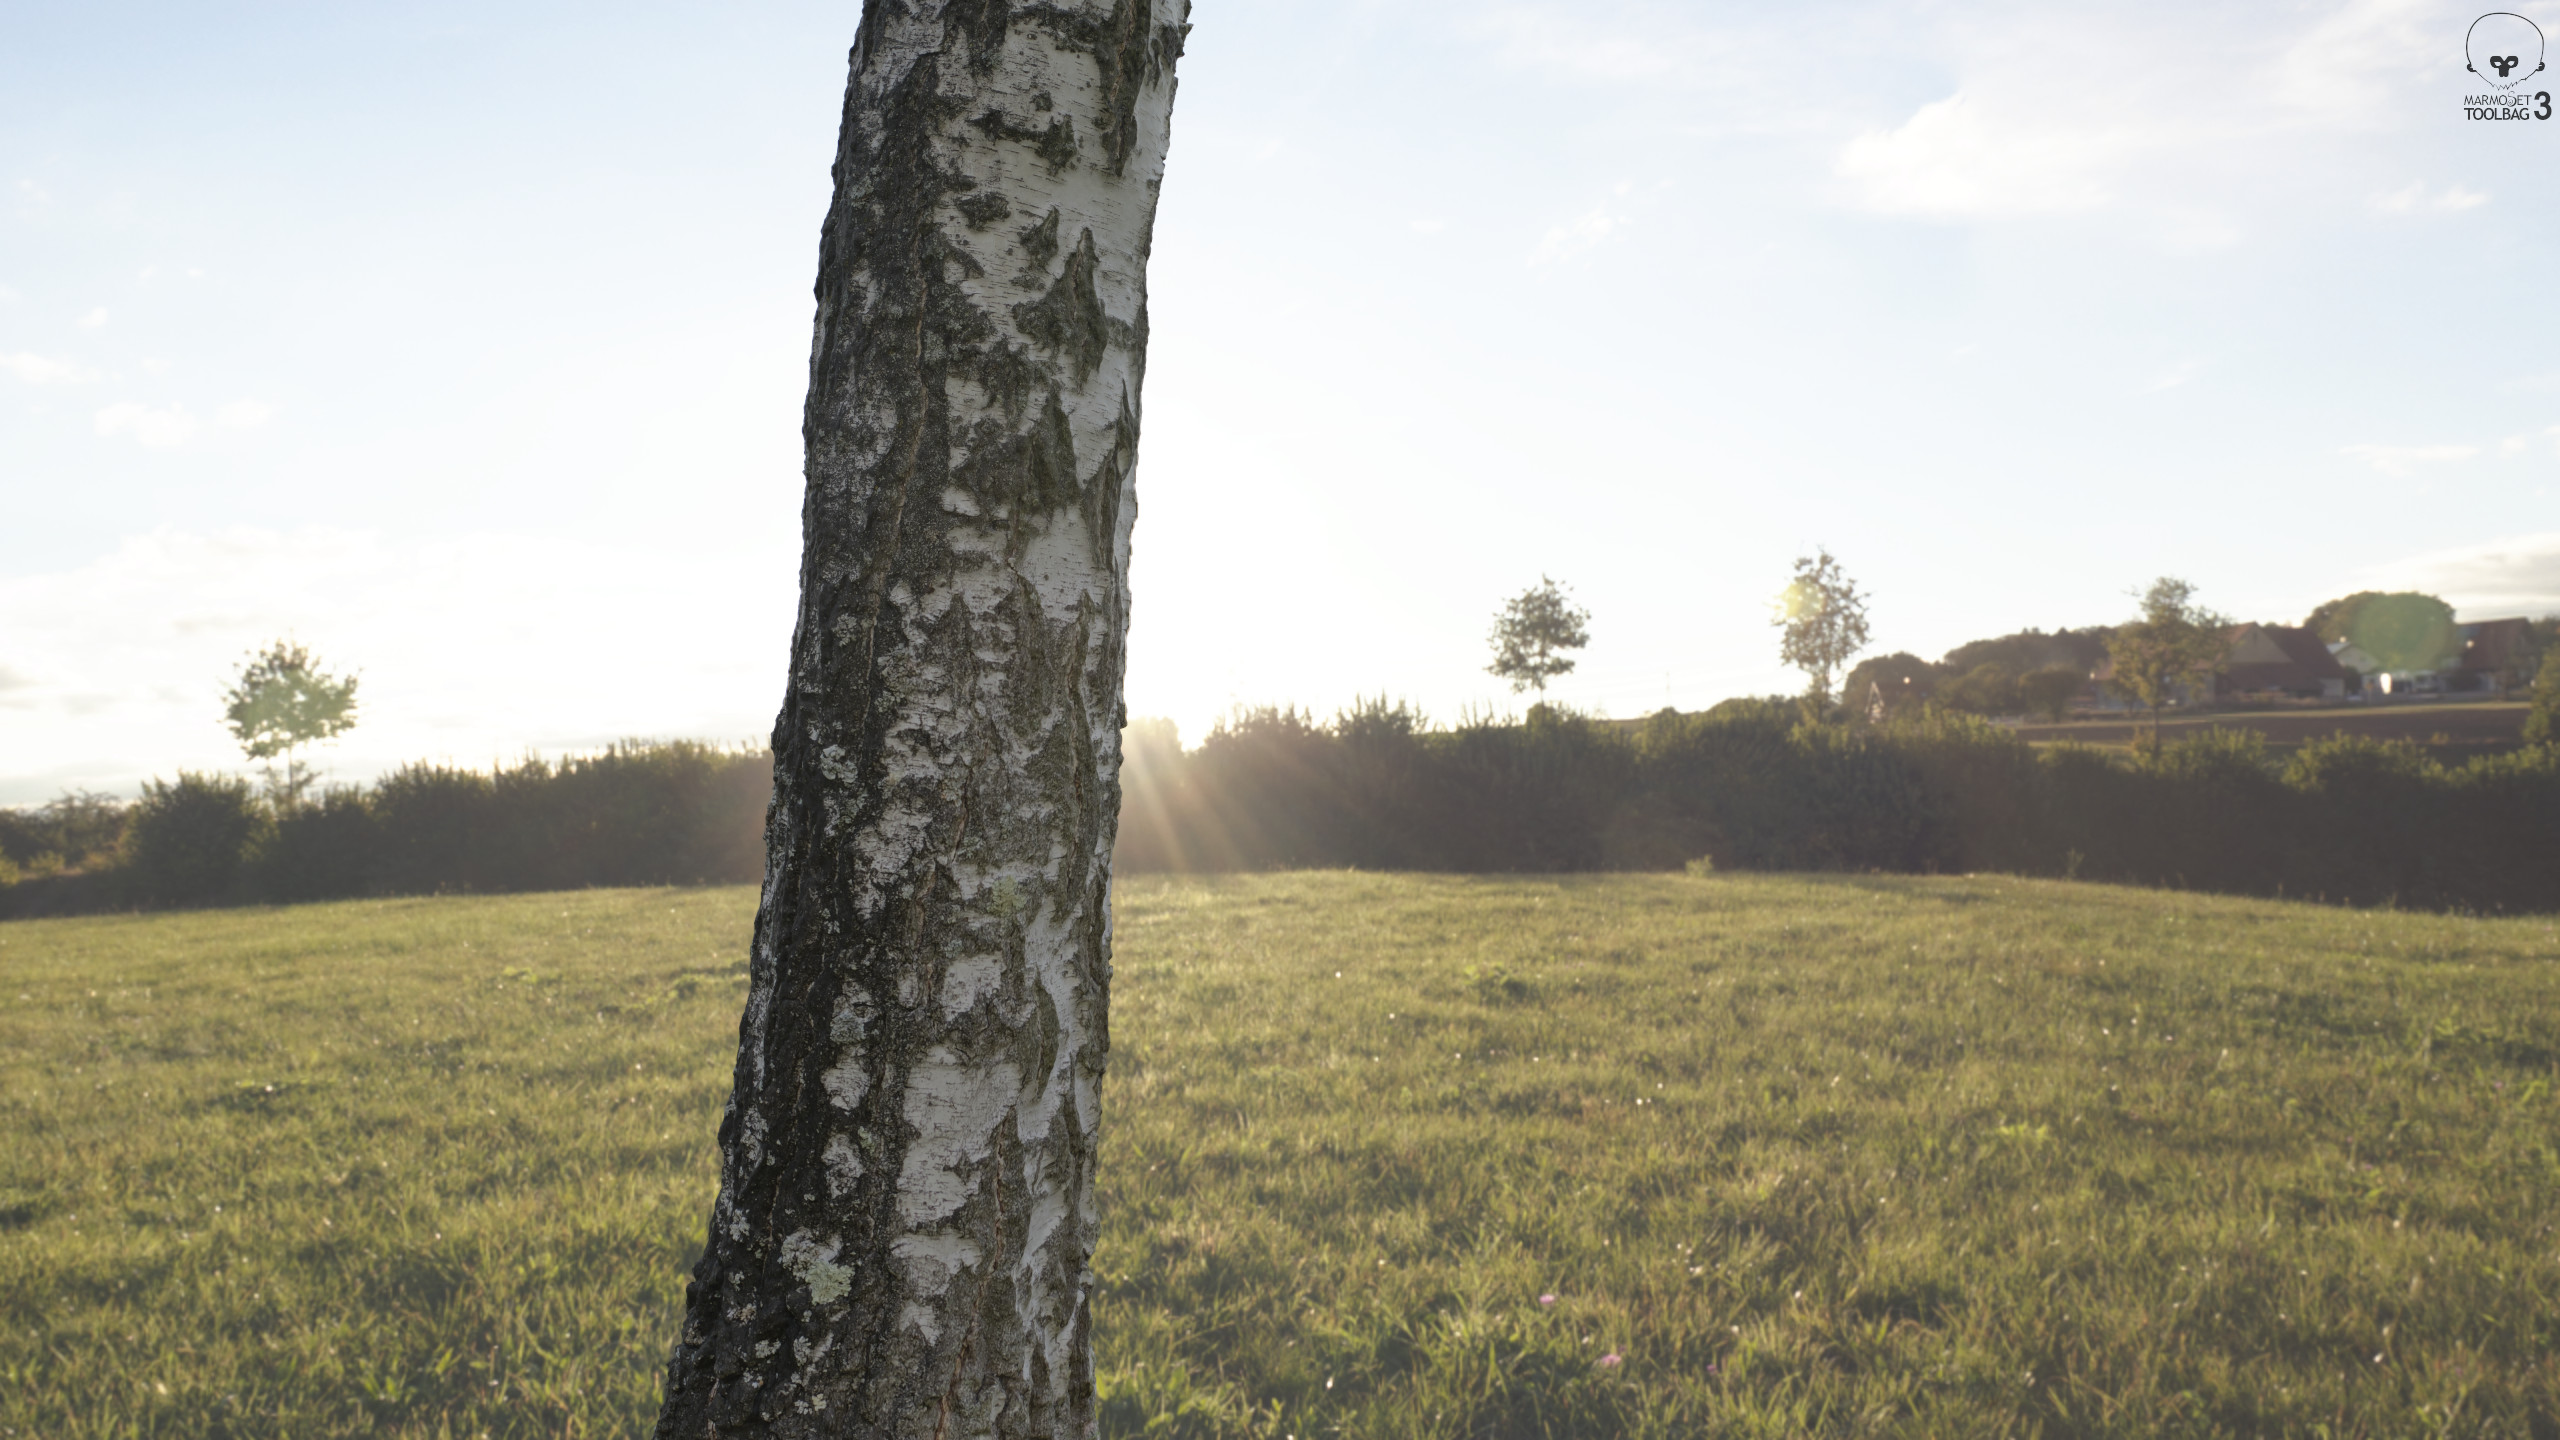 photogrammetry - scanned tree (textured)